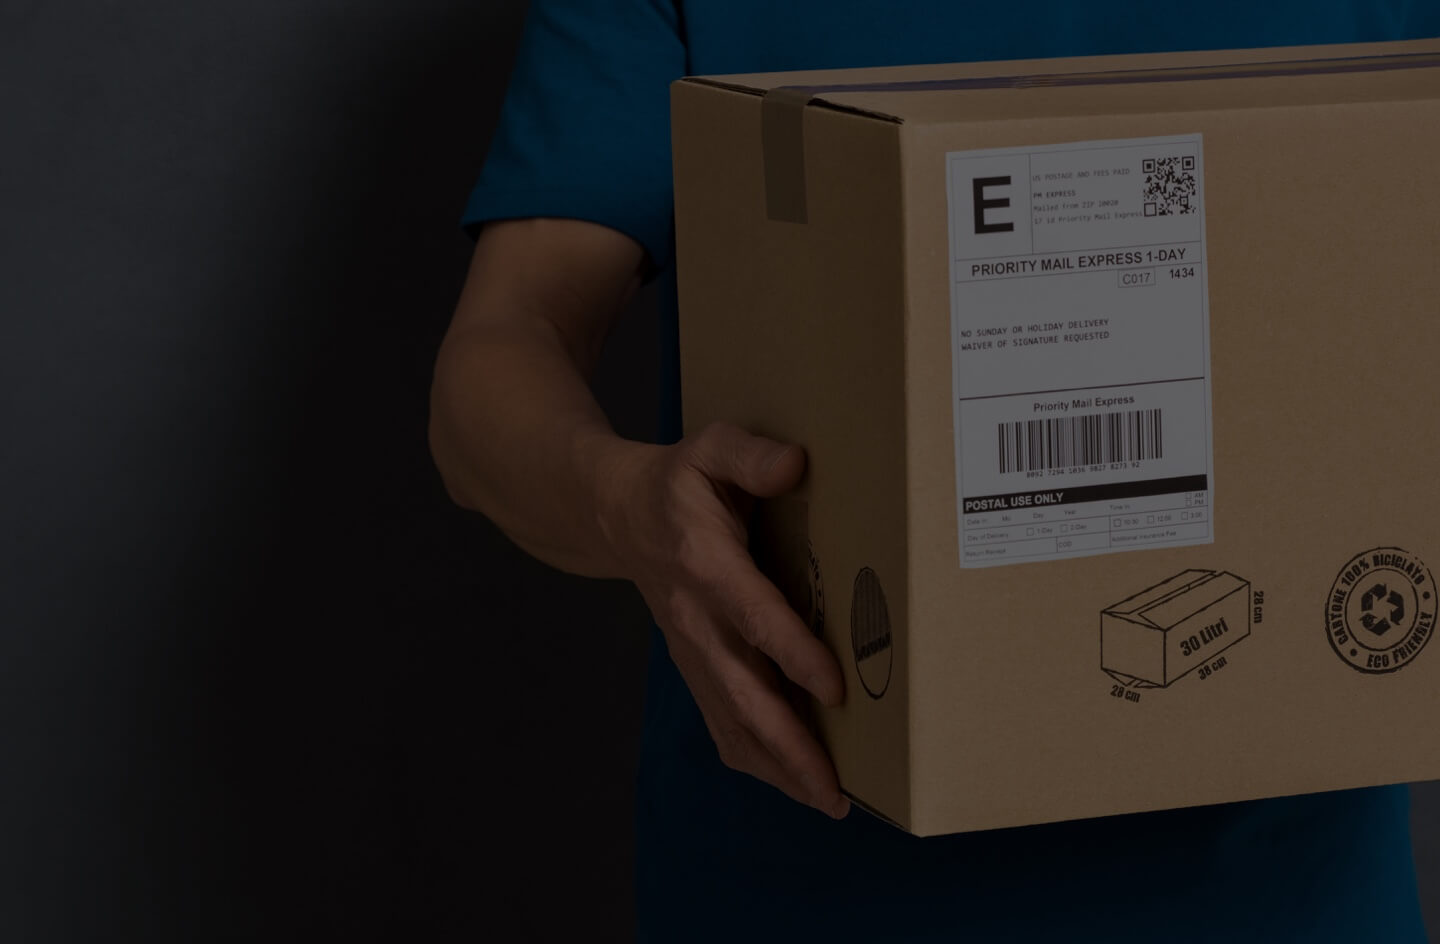 Image of man holding package with shipping label